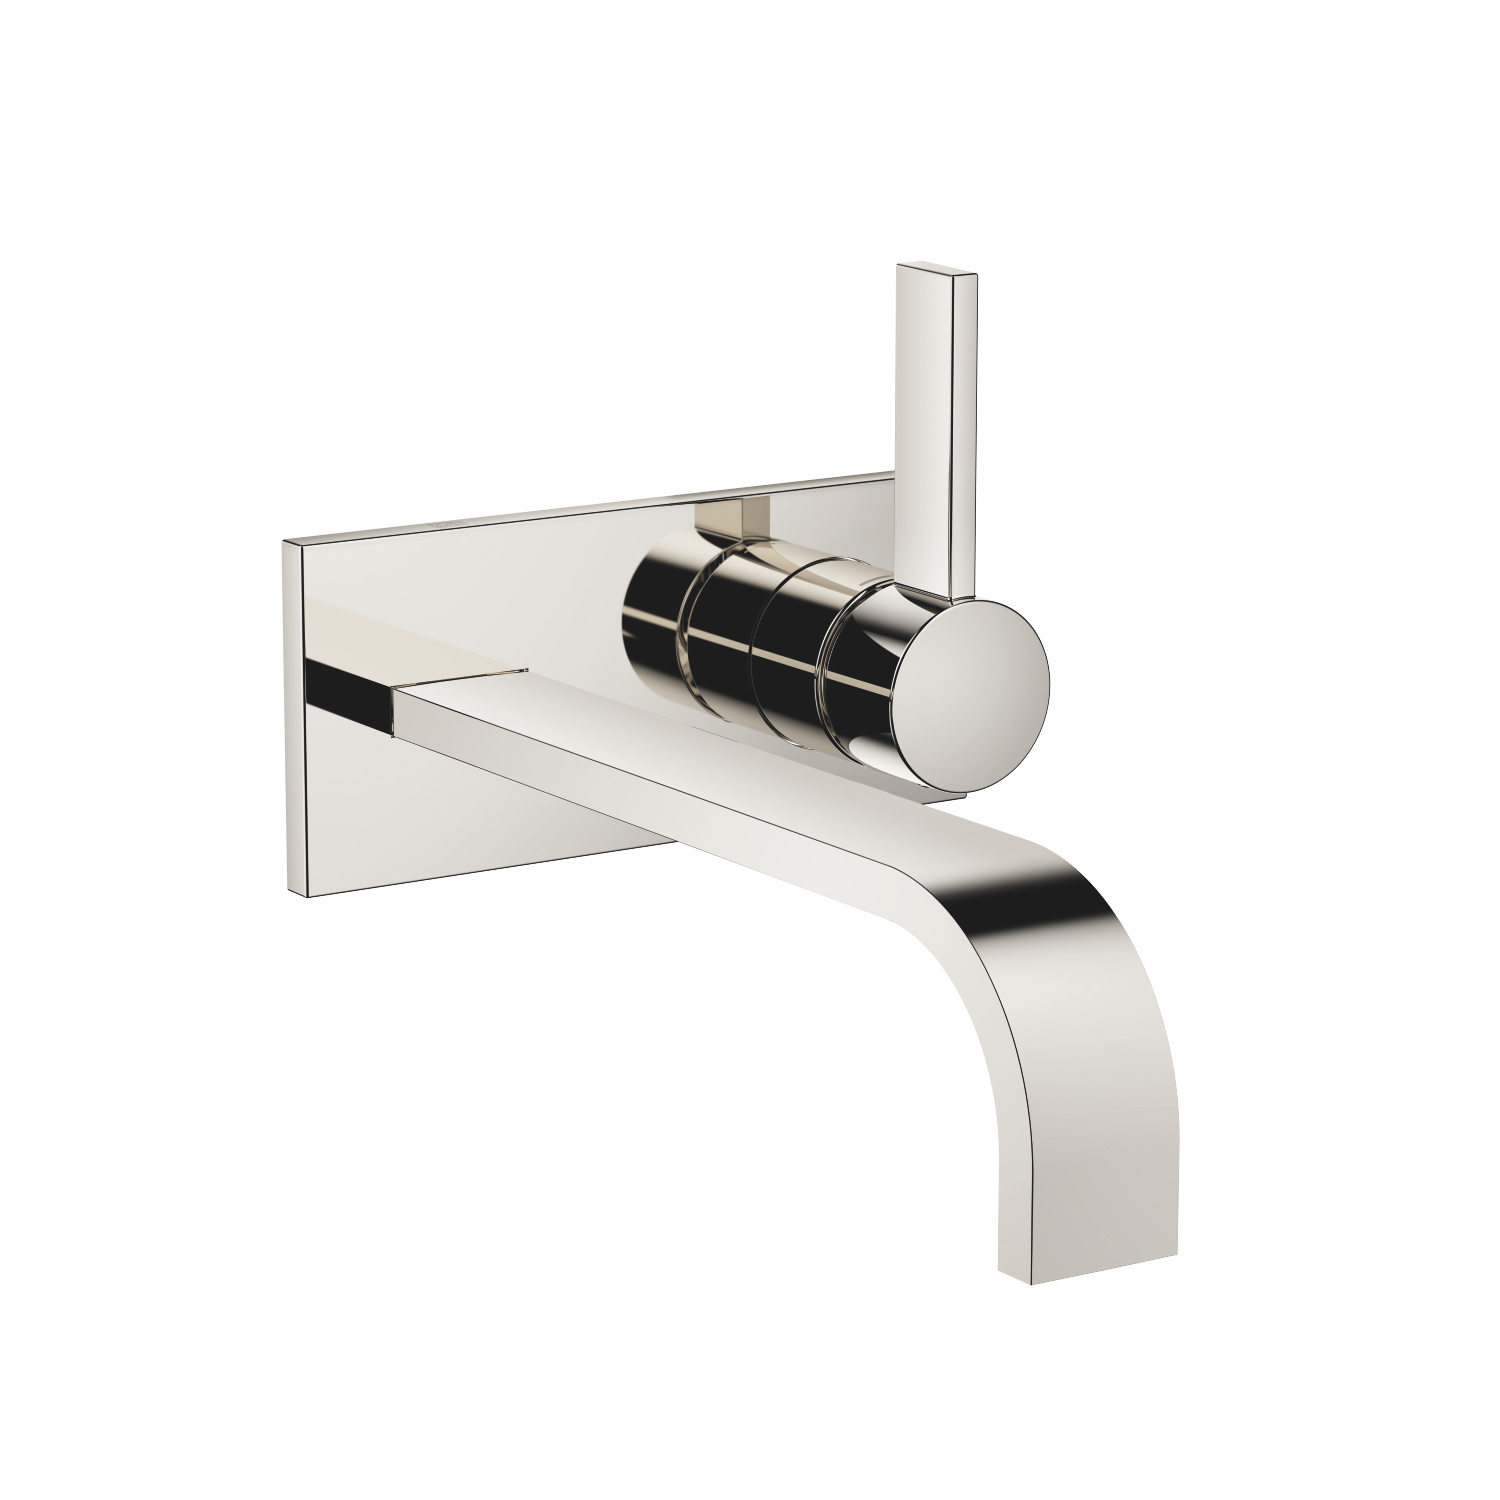 Wall-mounted single-lever basin mixer with cover plate without pop-up waste - platinum